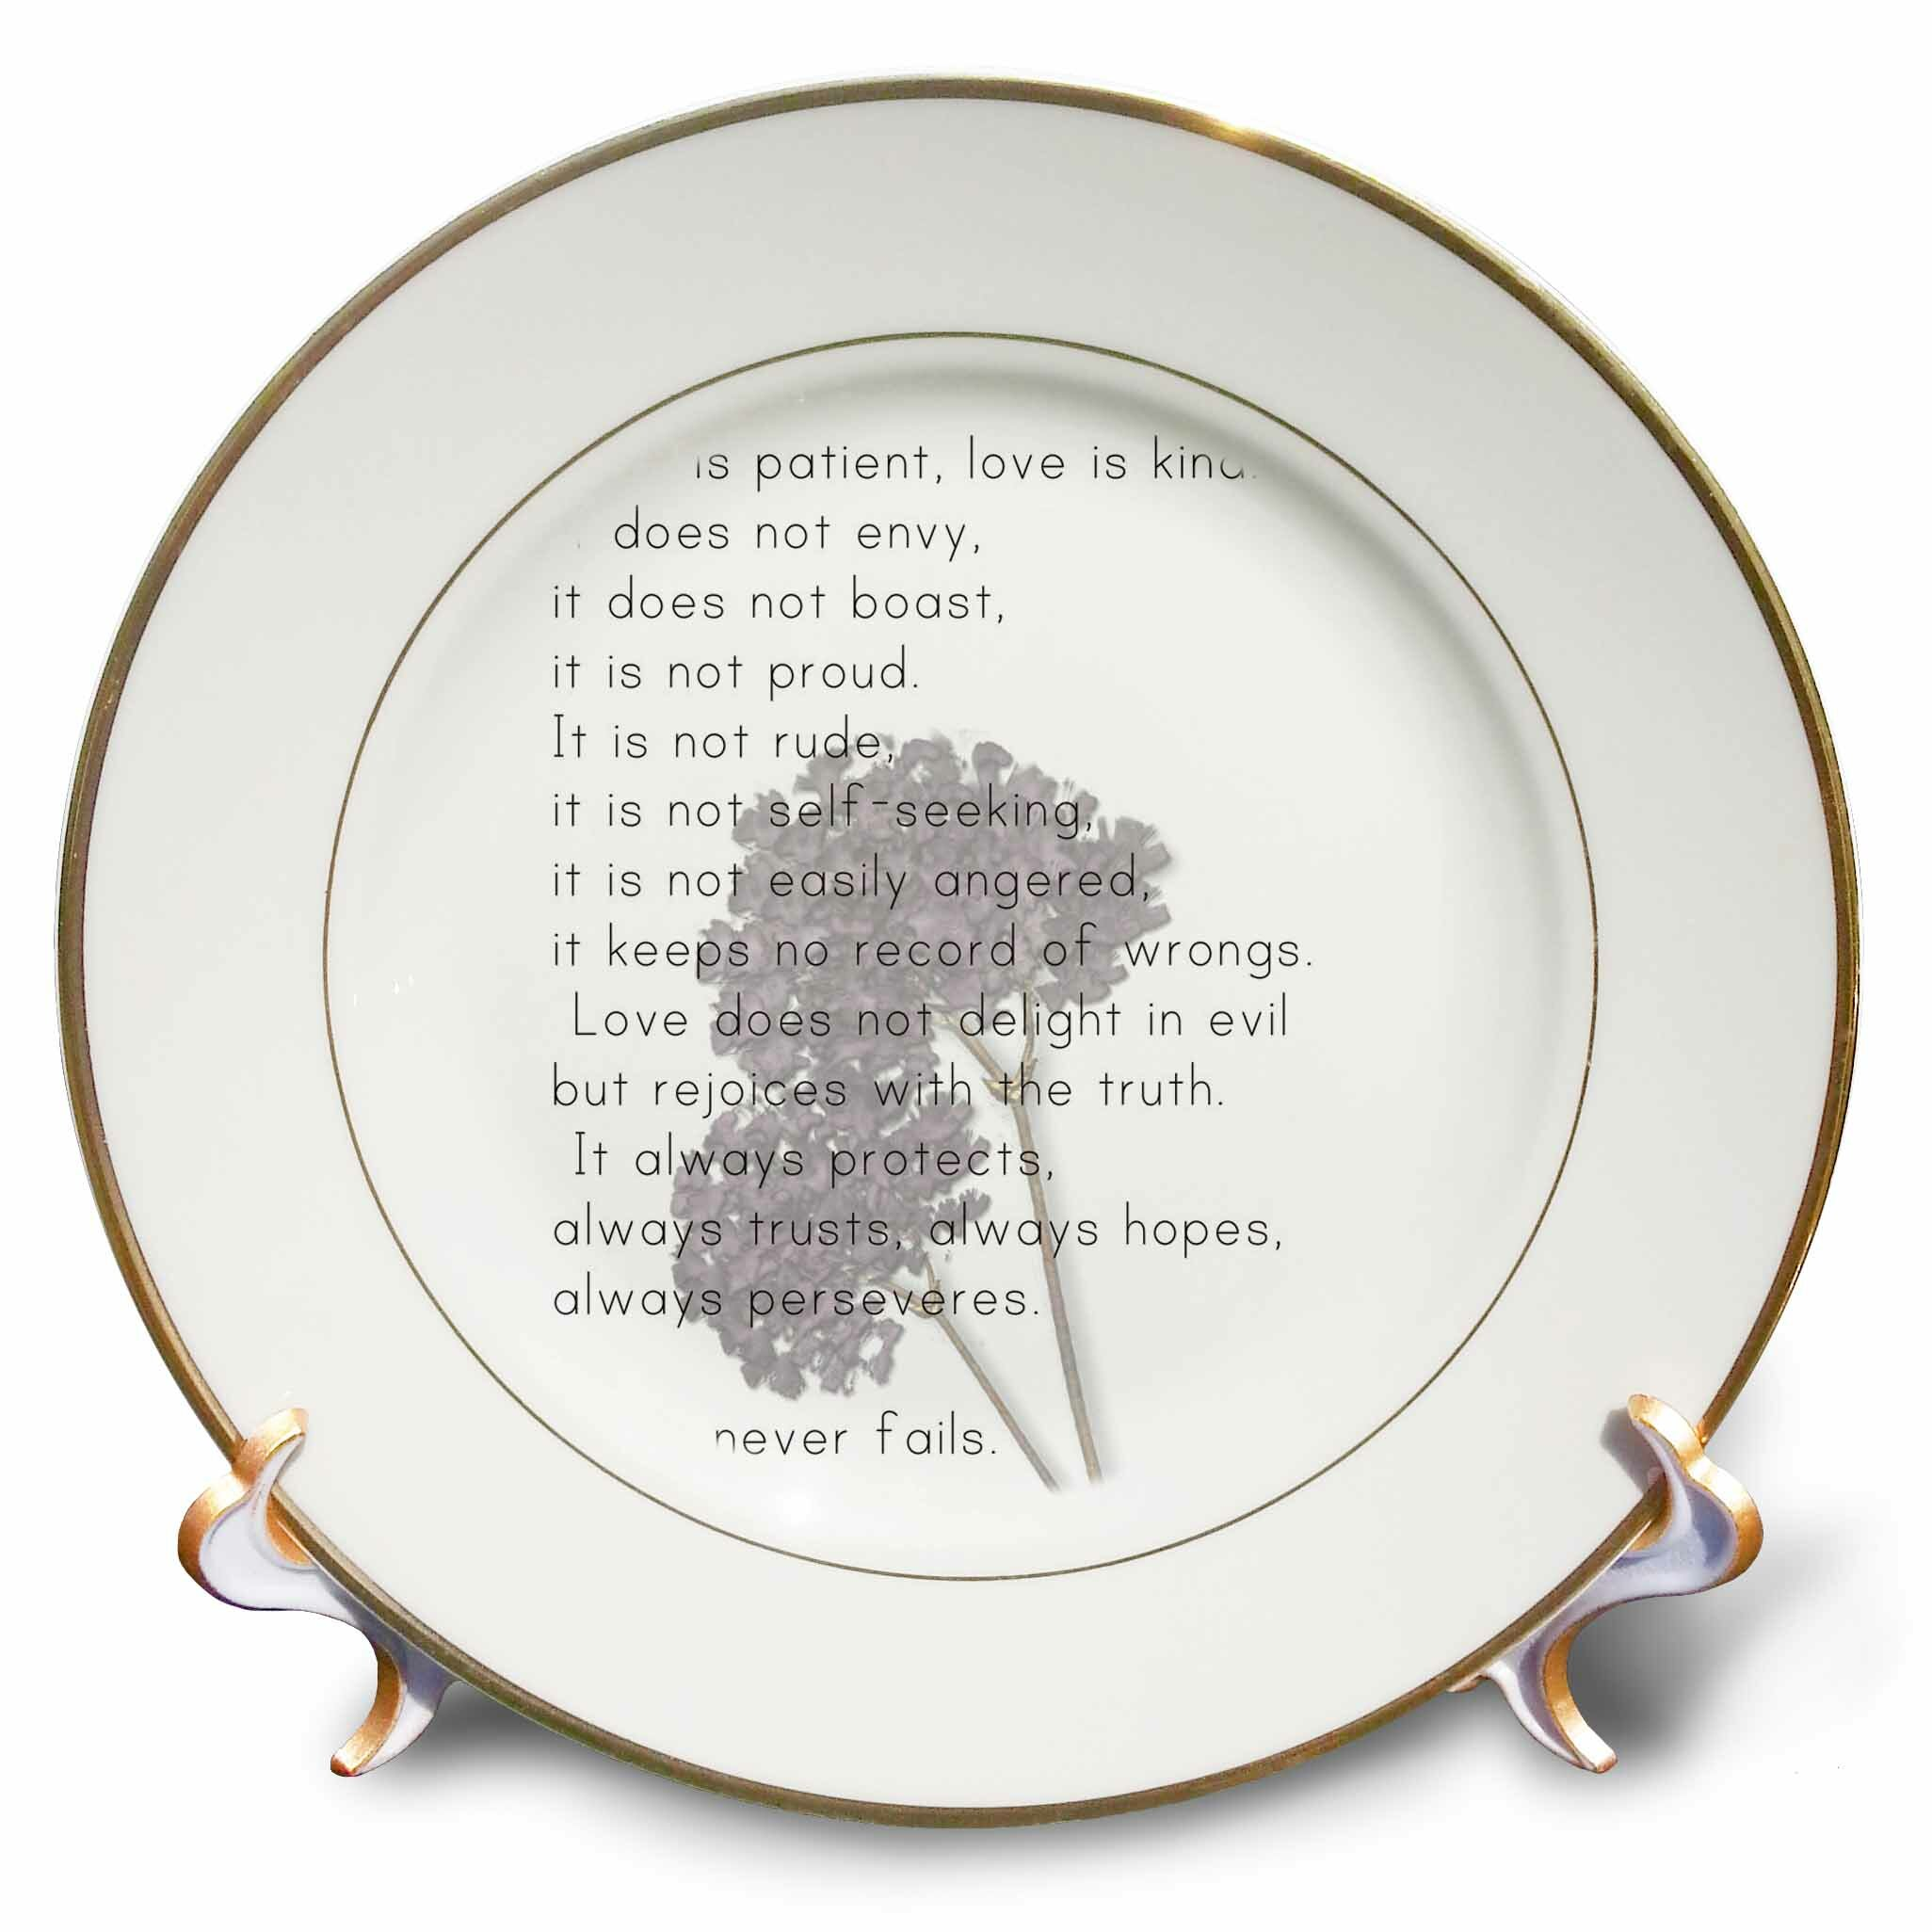 Love Is Patient, Love Is Kind Verse with Lavender Flowers Inspirational  Porcelain Decorative Plate